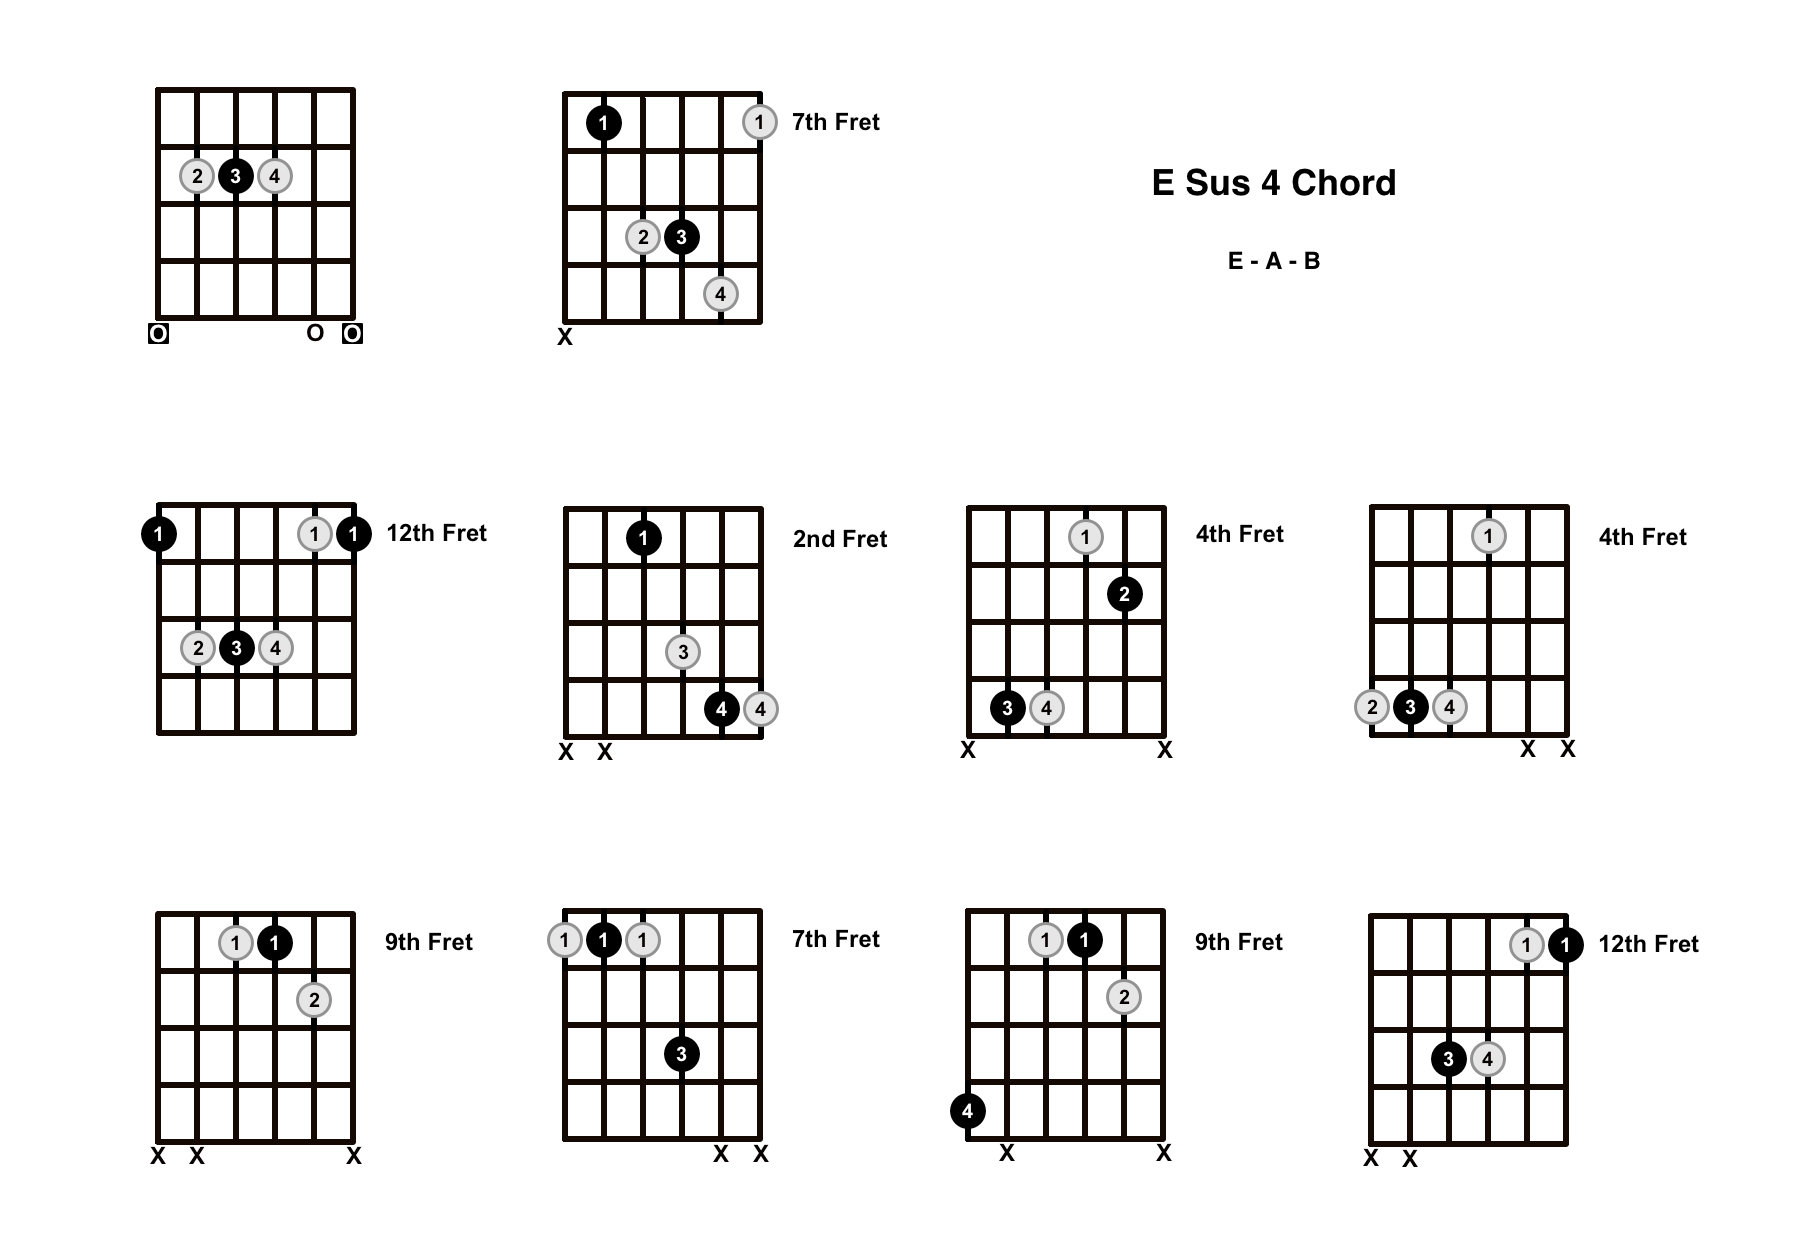 E Sus 4 Chord On The Guitar (E Suspended 4) – Diagrams, Finger Positions and Theory